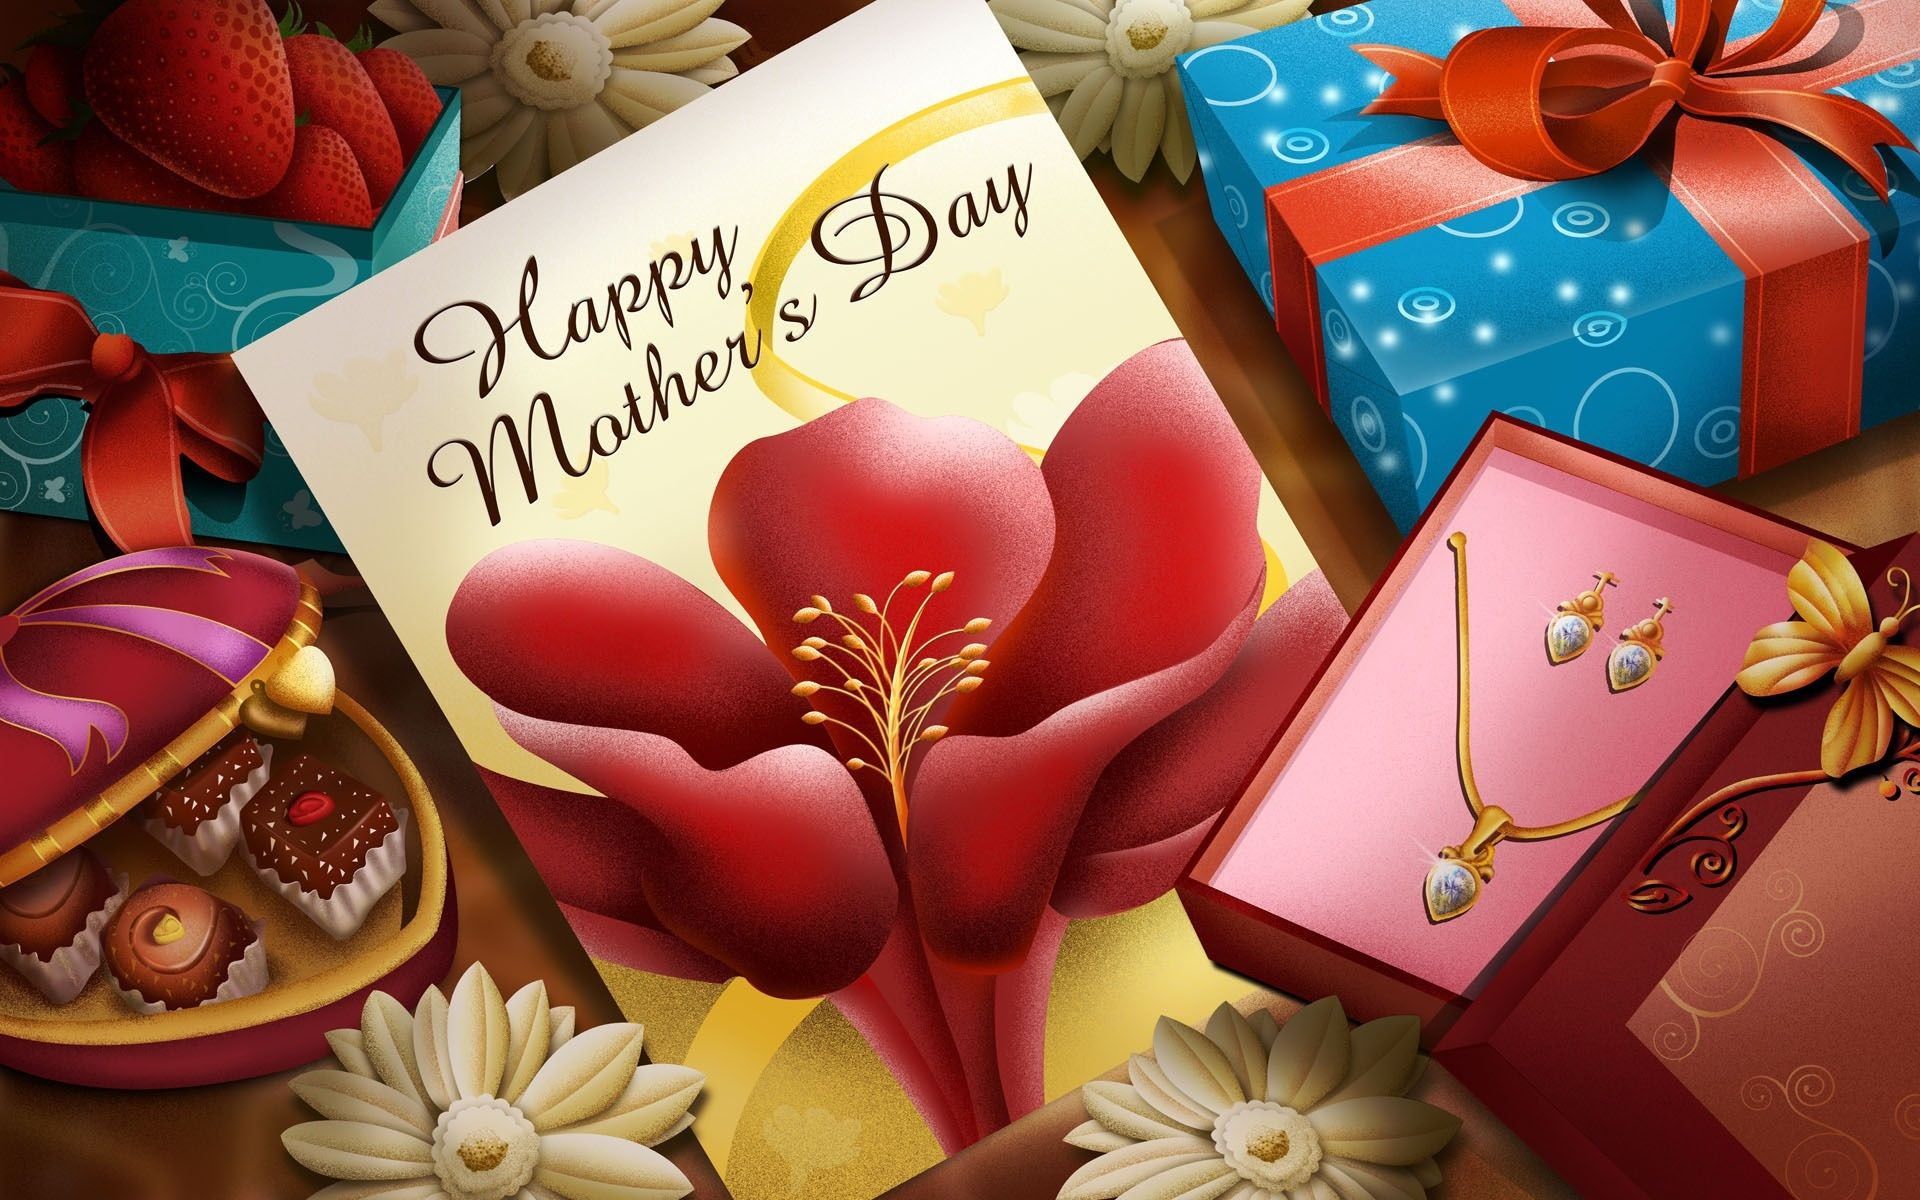 Mothers Day Images In Hindi Mother S Day Card Images Mother S Day Wishes Images M Happy Mothers Day Wallpaper Happy Mother S Day Card Mothers Day Wishes Images